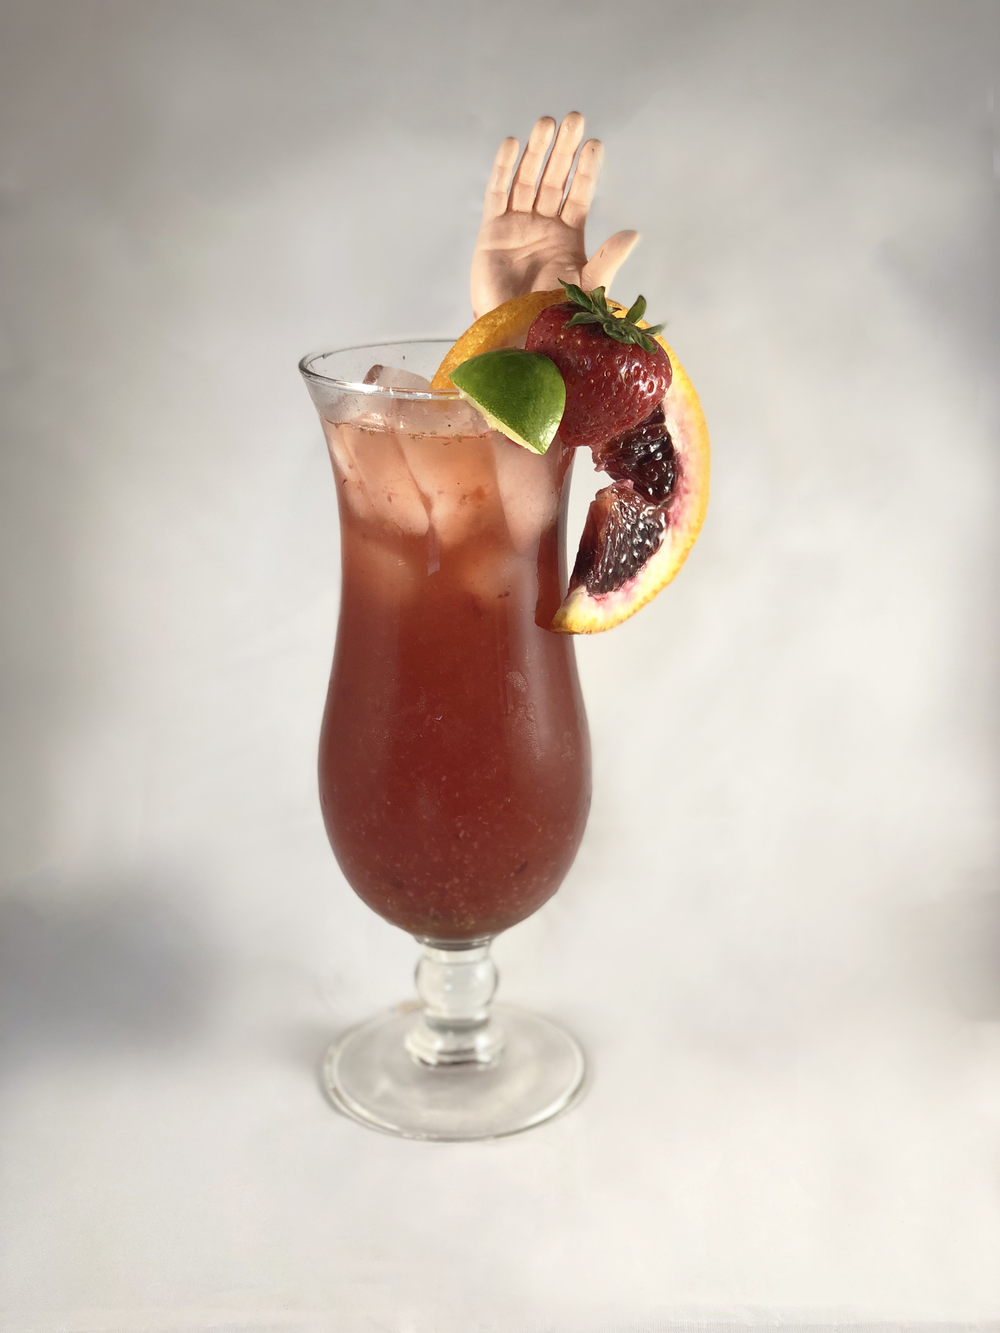 Office Killer (1997) - Dorineadine:Cran cherry juiceSugarPink peppercornCinnamonHerricane:5 Large strawberries, muddled and strained5 oz Passion fruit juice1 Blood orange, juiced1 Lime, juiced2 oz Spiced rum1.5 oz Coconut rumDorineadine, or grenadine, to tasteFruit for garnish To make Dorineadine: Combine equal parts juice and sugar in a saucepan and season to taste. Boil, stirring frequently until dissolved. Strain, and allow to cool before use. To make Herricane: Combine all ingredients in a shaker with ice and shake vigorously, then pour over fresh ice; if you're feeling frisky, pour in a blender with fresh ice make a slush. Add fruit and flesh for garnish.